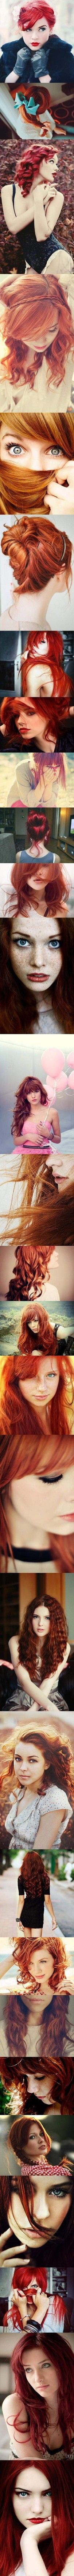 Redheads. National Geographic theorizes natural redheads may be extinct within the next 100 years. Recessive genes, yo.